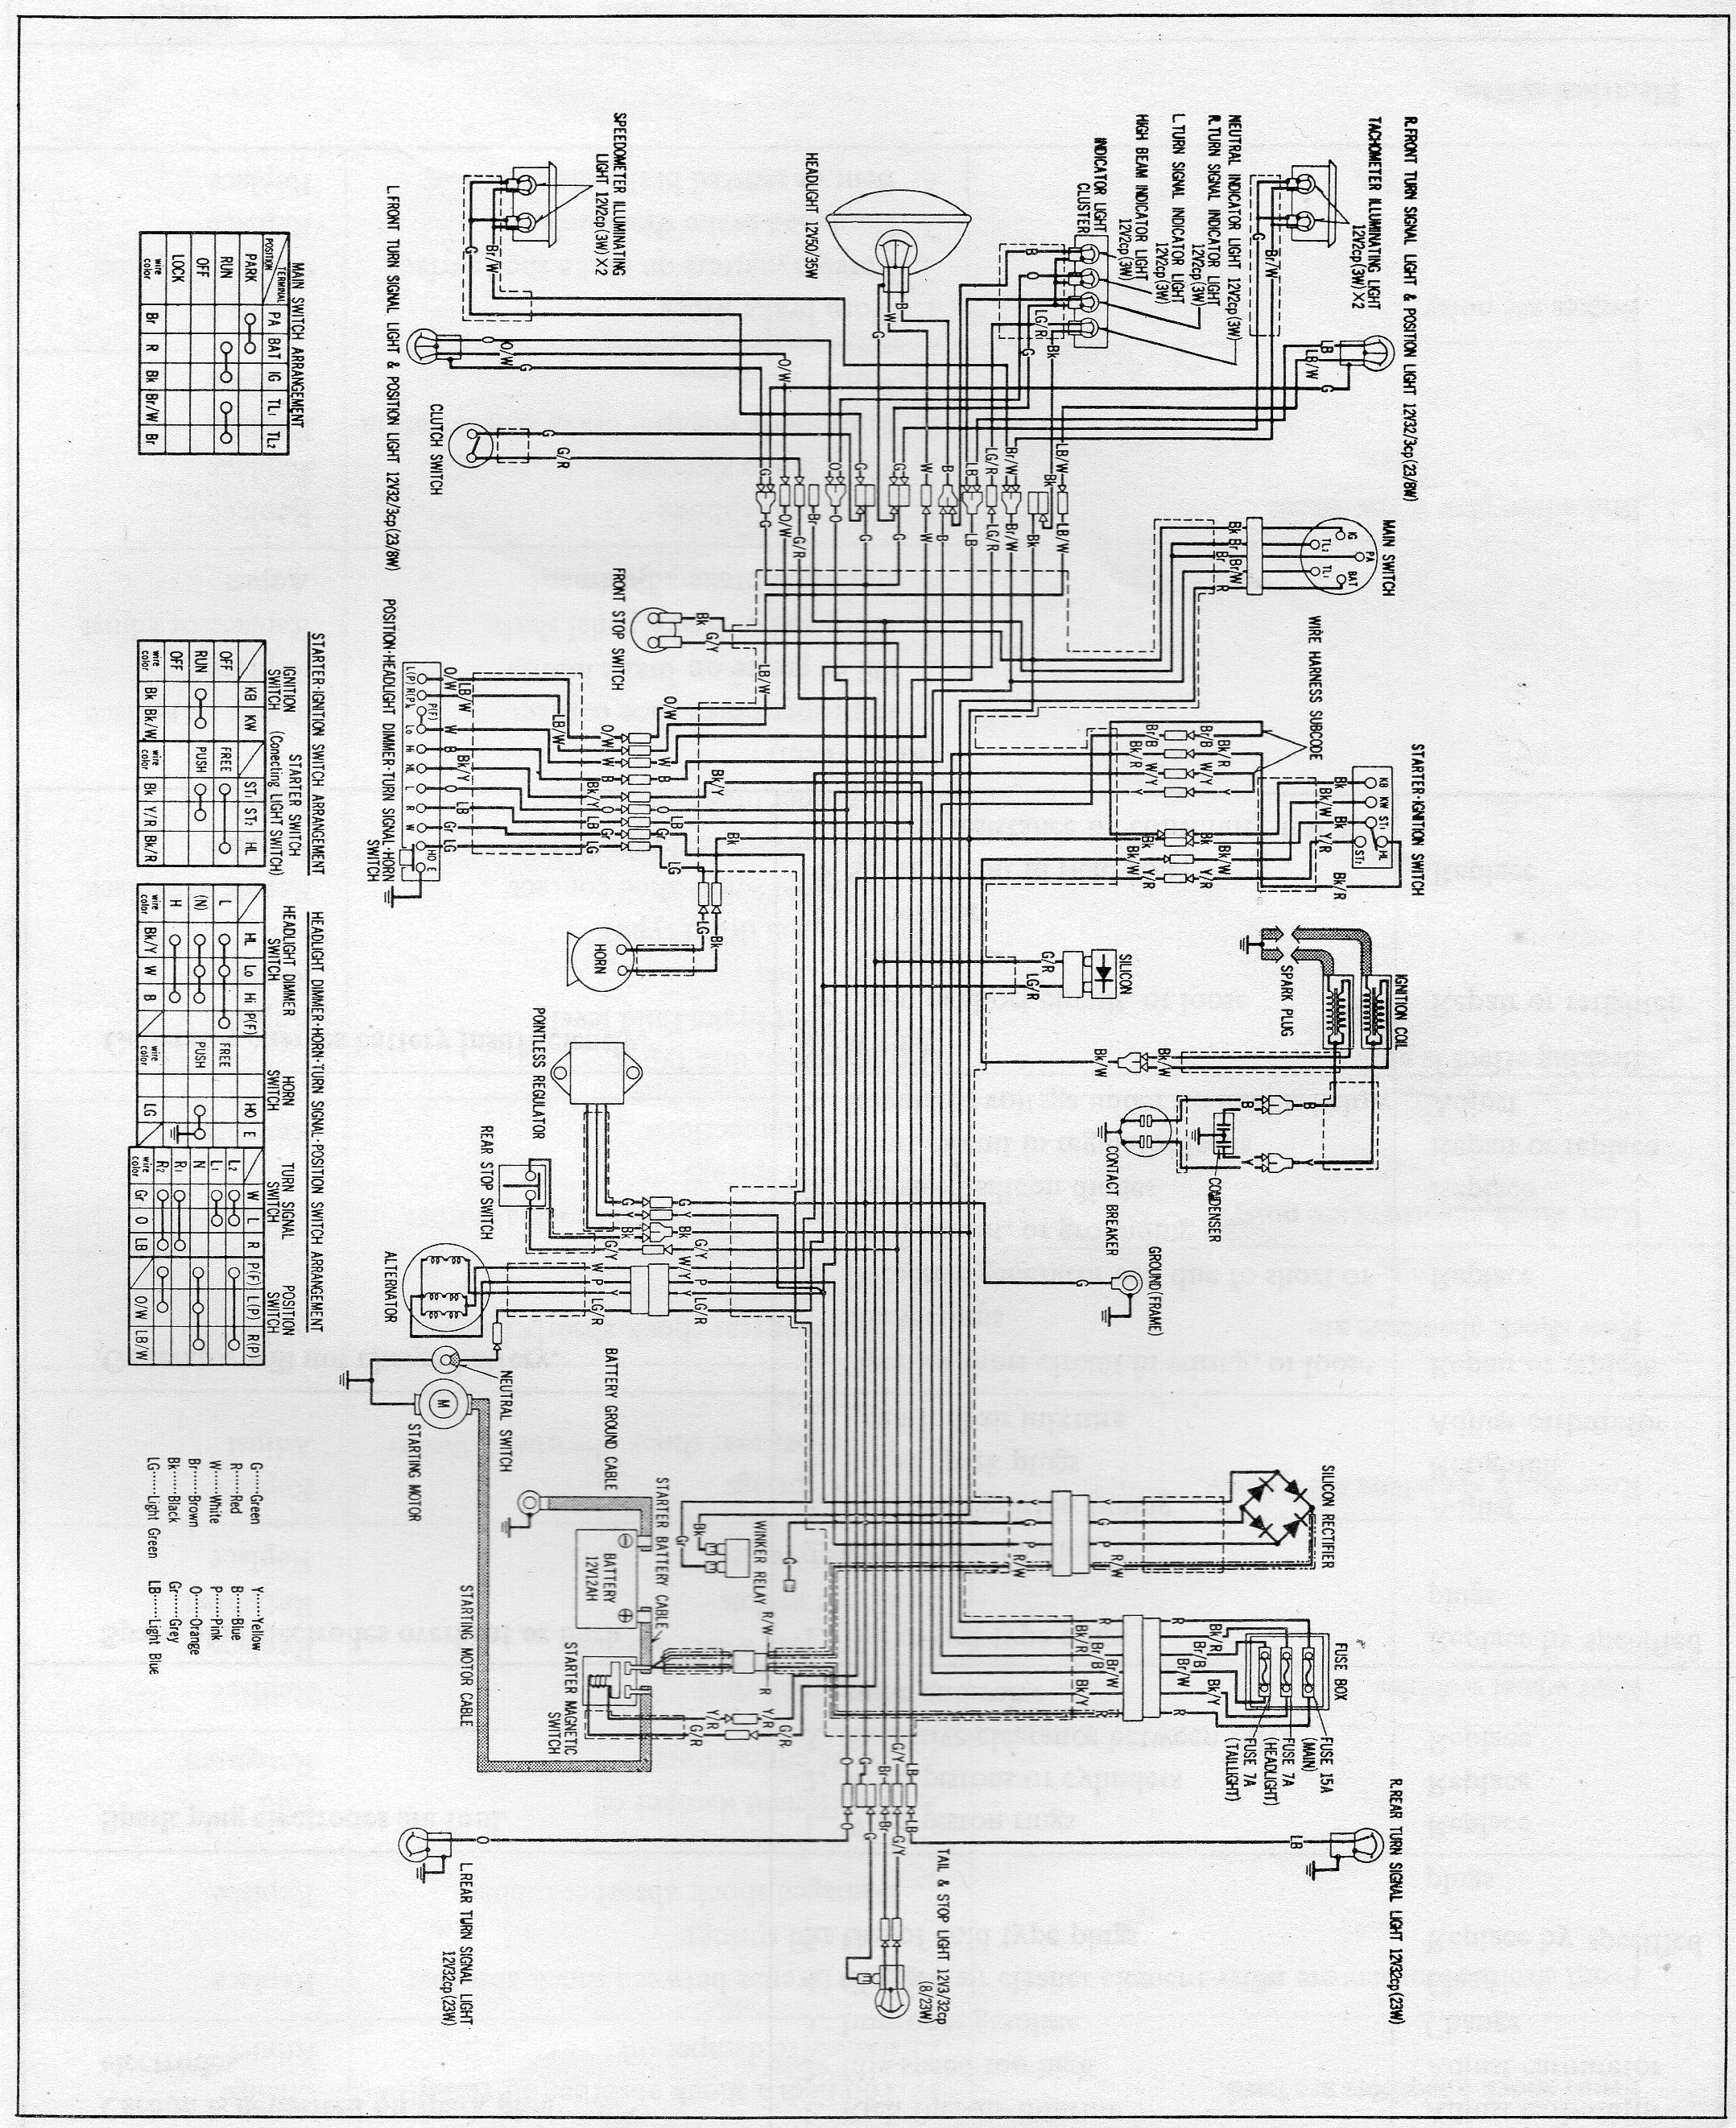 Transmission Circuit Schematic 2007 Suzuki forenza Switch to Schematic Wiring Diagrams Full Hd Version Wiring Of Transmission Circuit Schematic 2007 Suzuki forenza